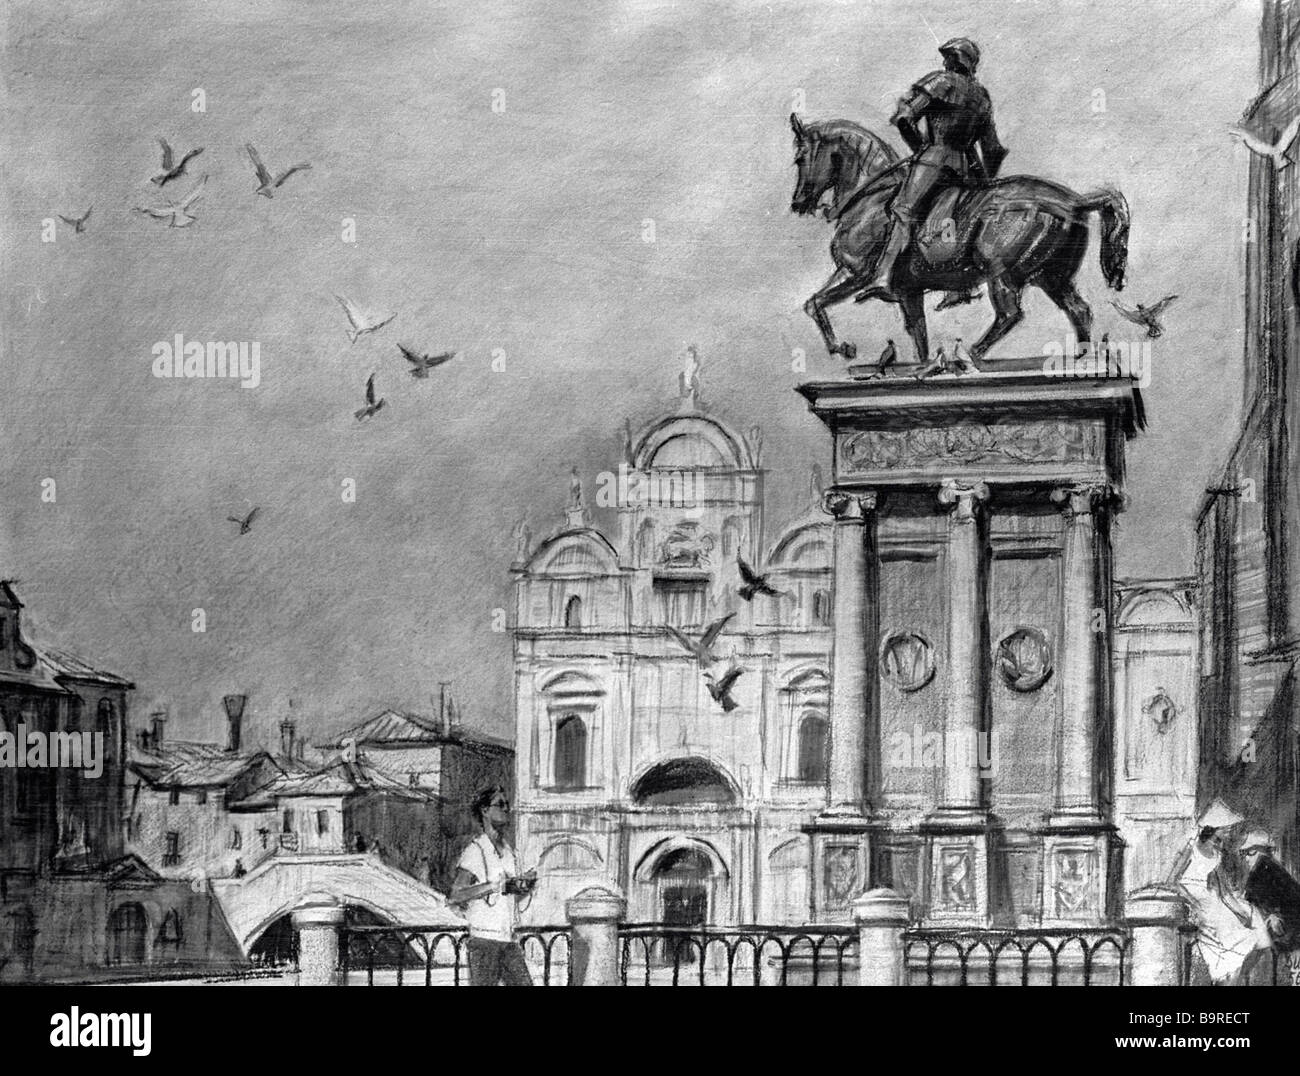 Dmitry Shmarinov At the Colleone Statue Venice Sanguine Stock Photo